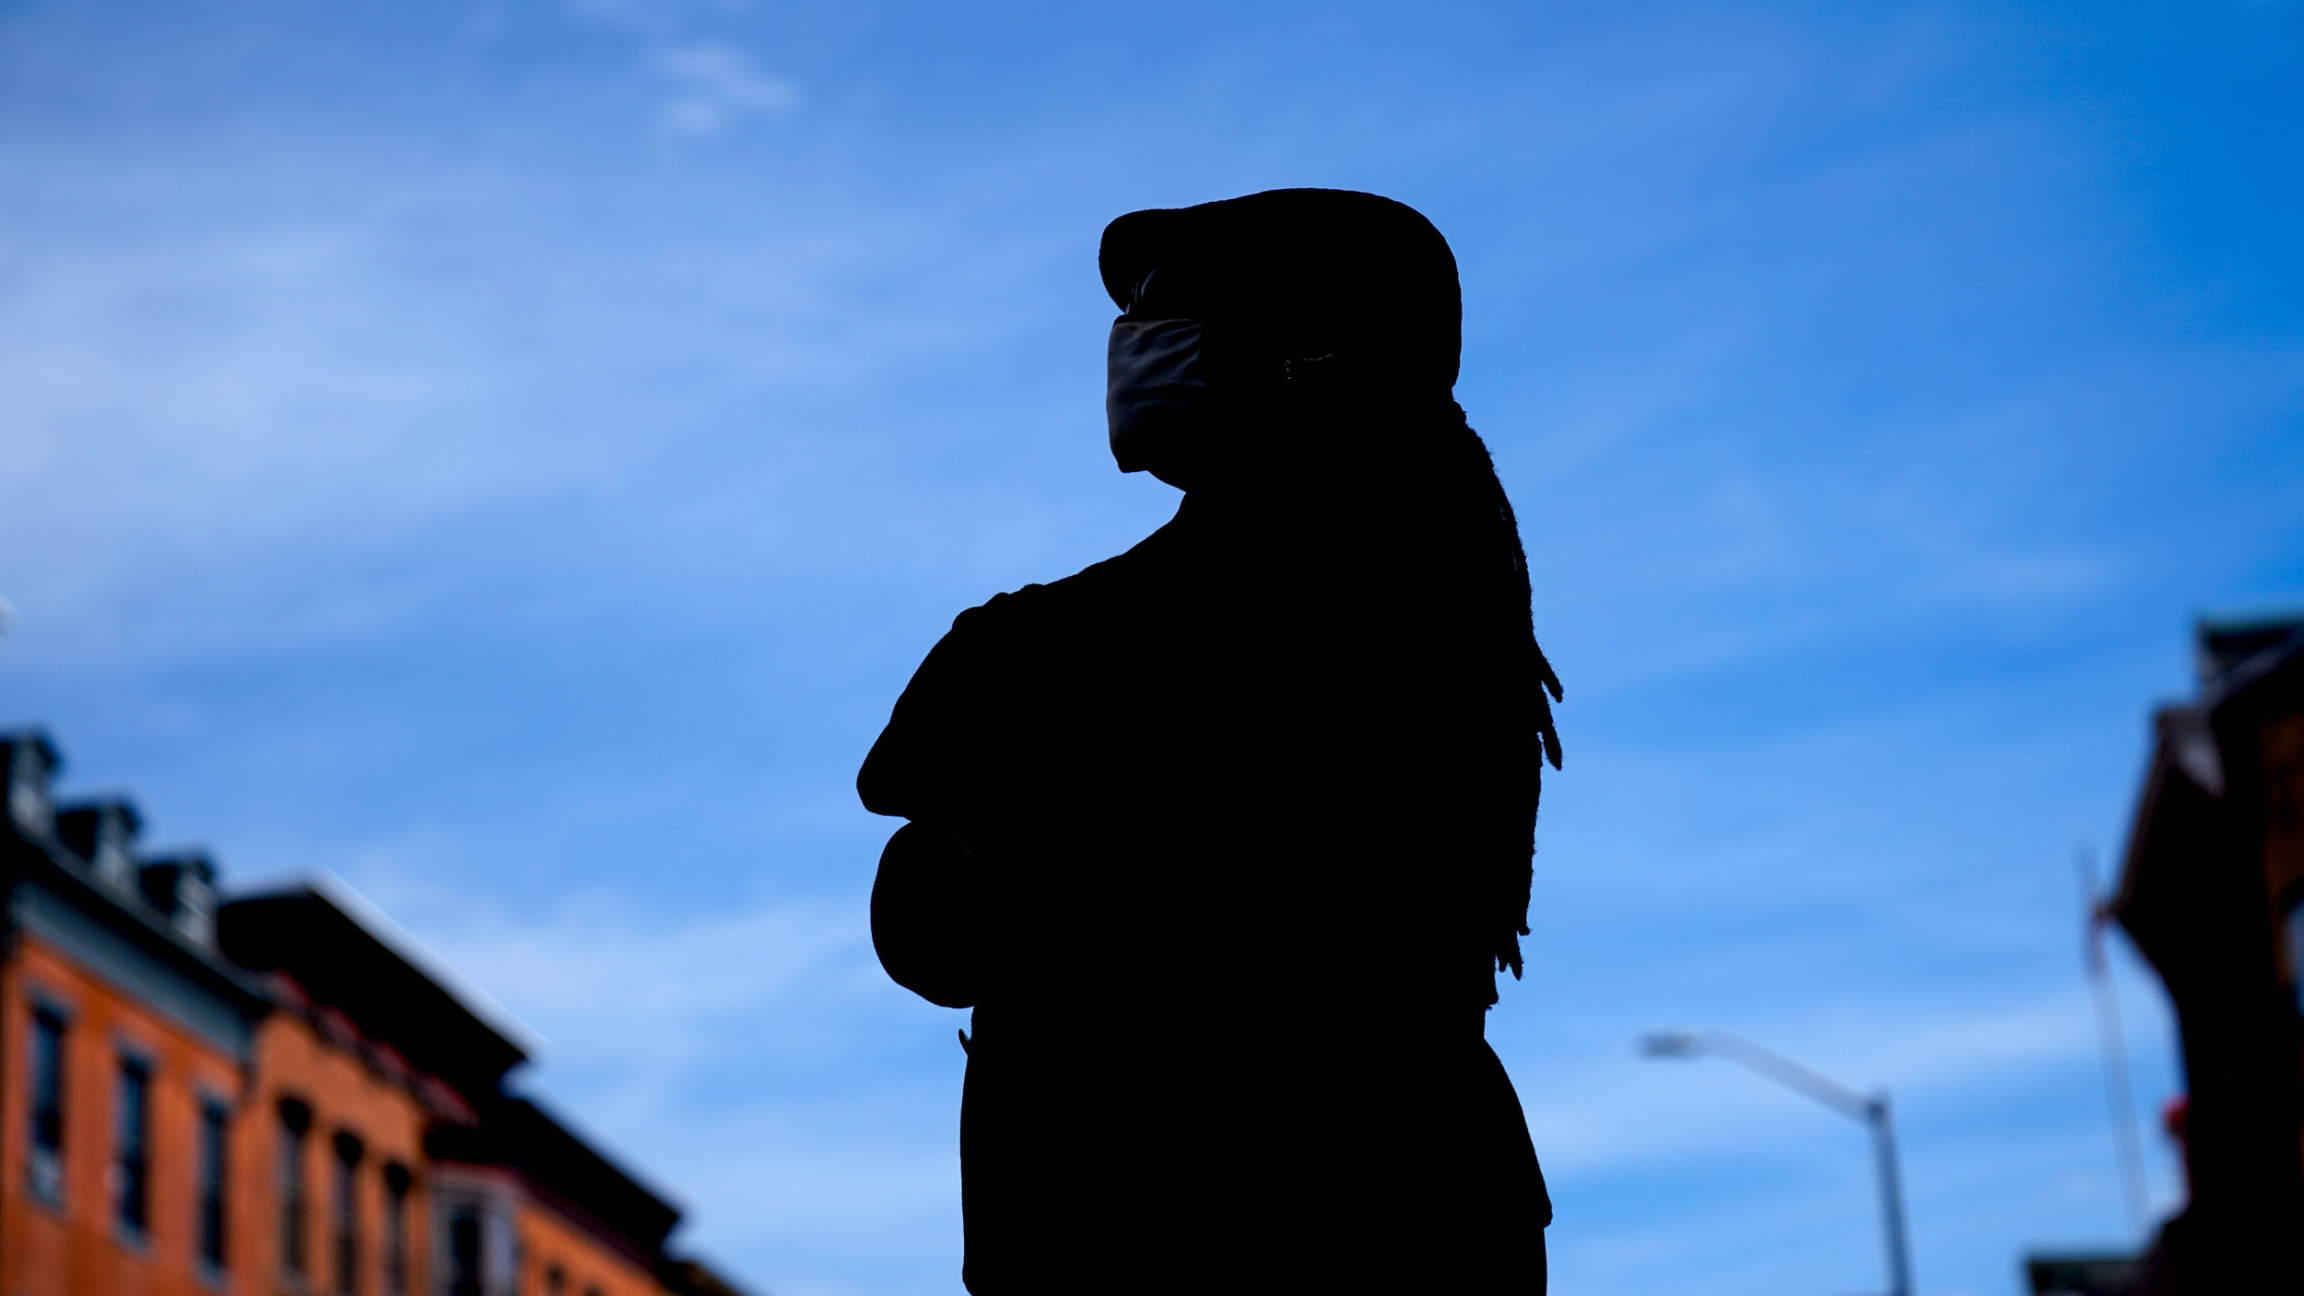 A woman stands in silhouette against a blue sky.